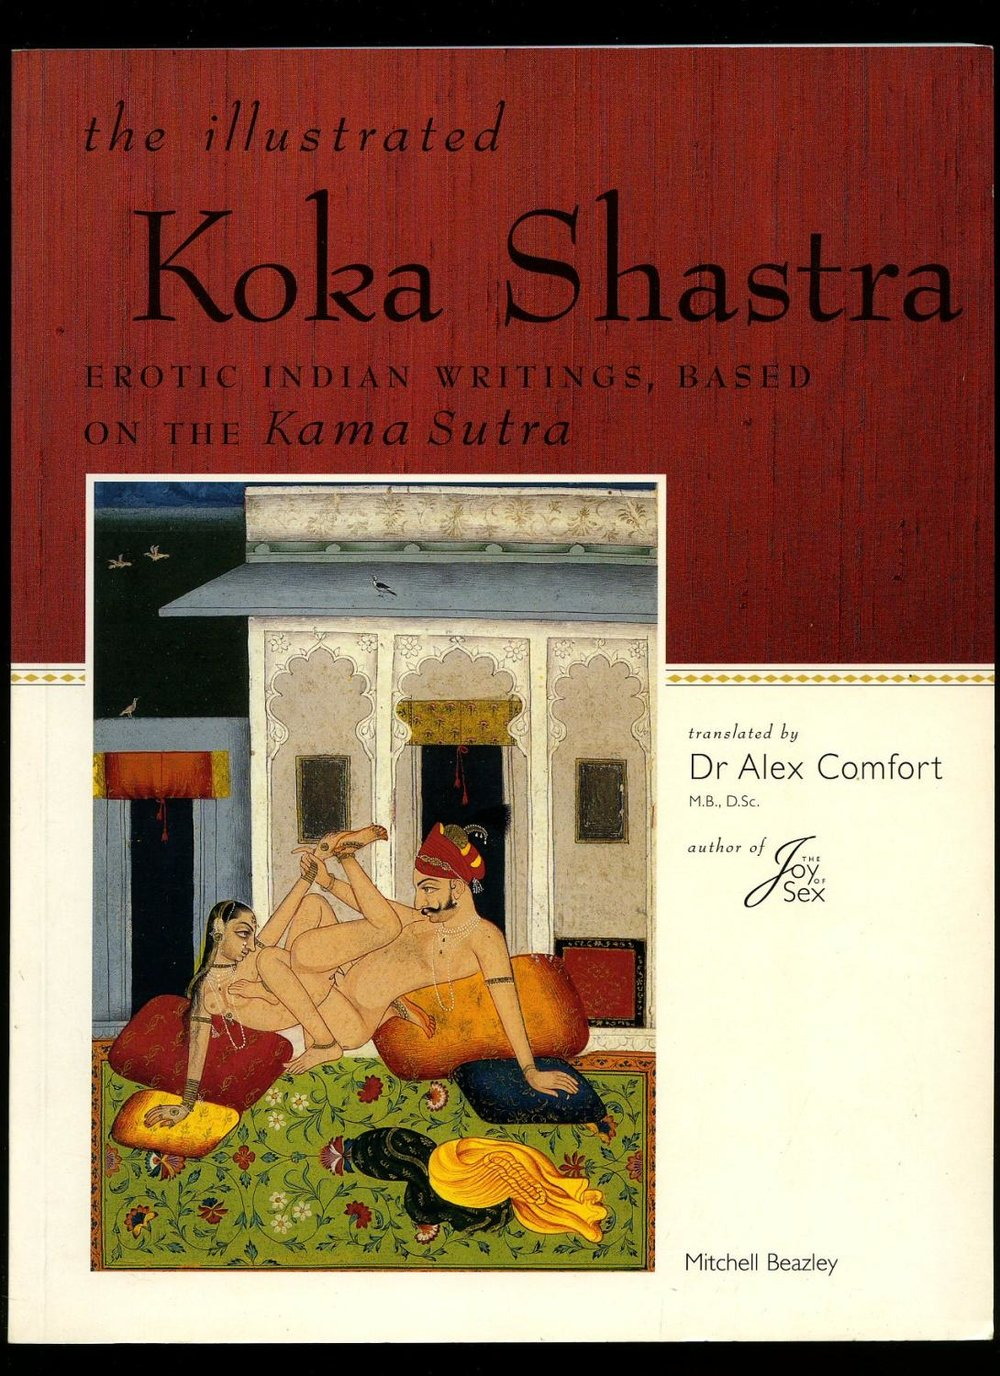 Image taken from: https://www.abebooks.com/Illustrated-Koka-Shastra-Being-Ratirahasya-Kokkoka/658439551/bd